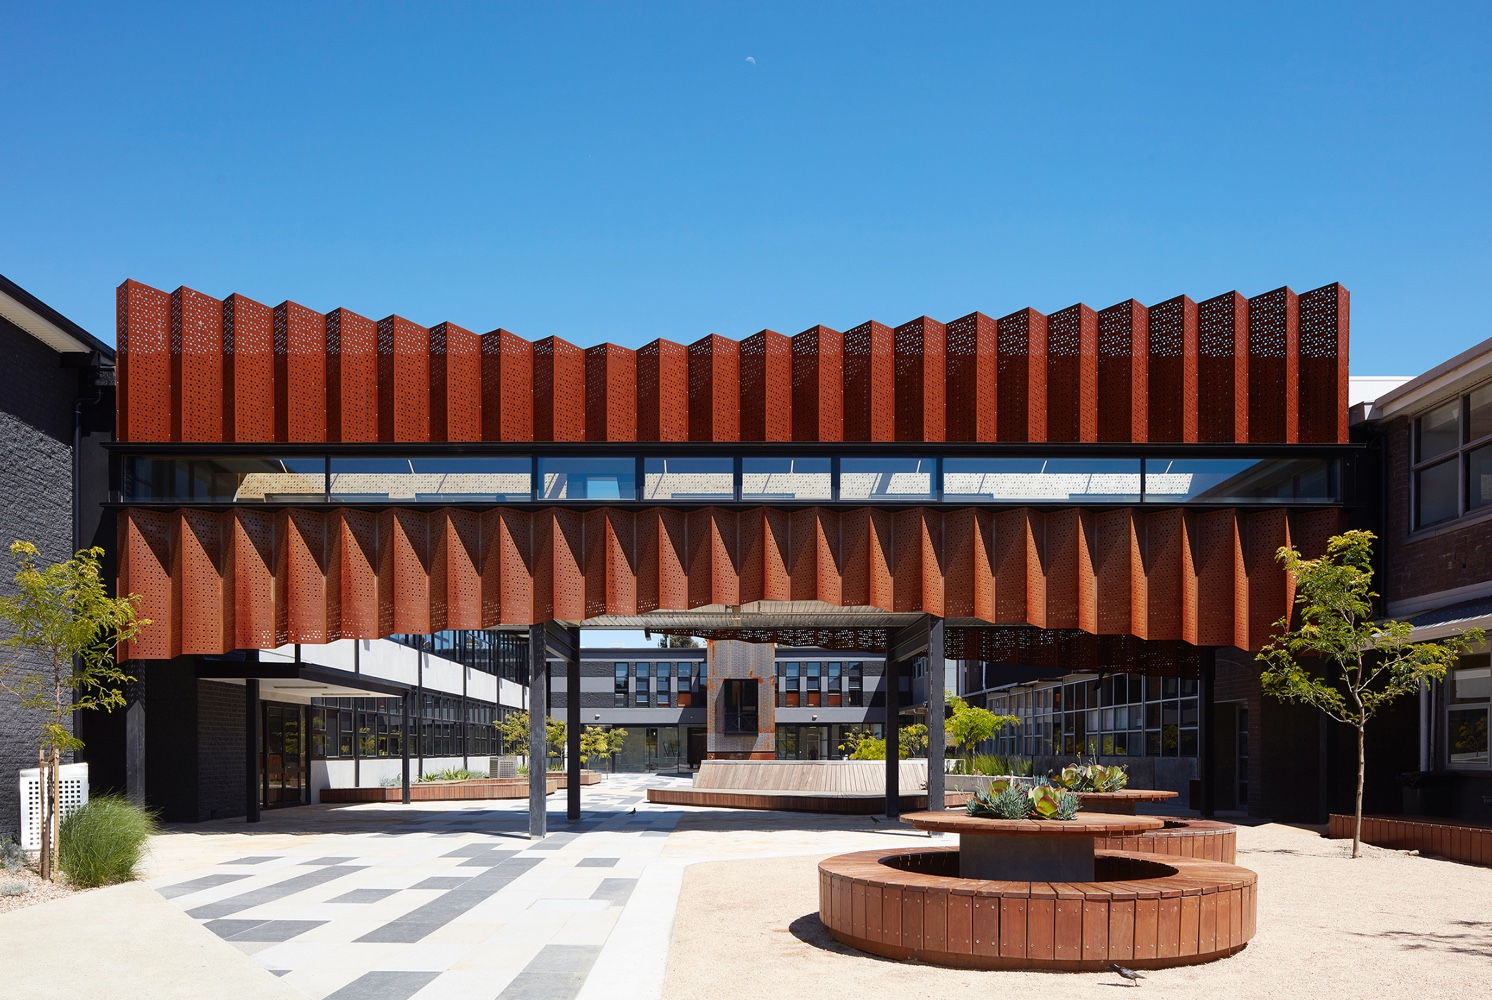 Zig-zag corten panels for the exterior of Flyover Gallery at Caroline Chisholm College